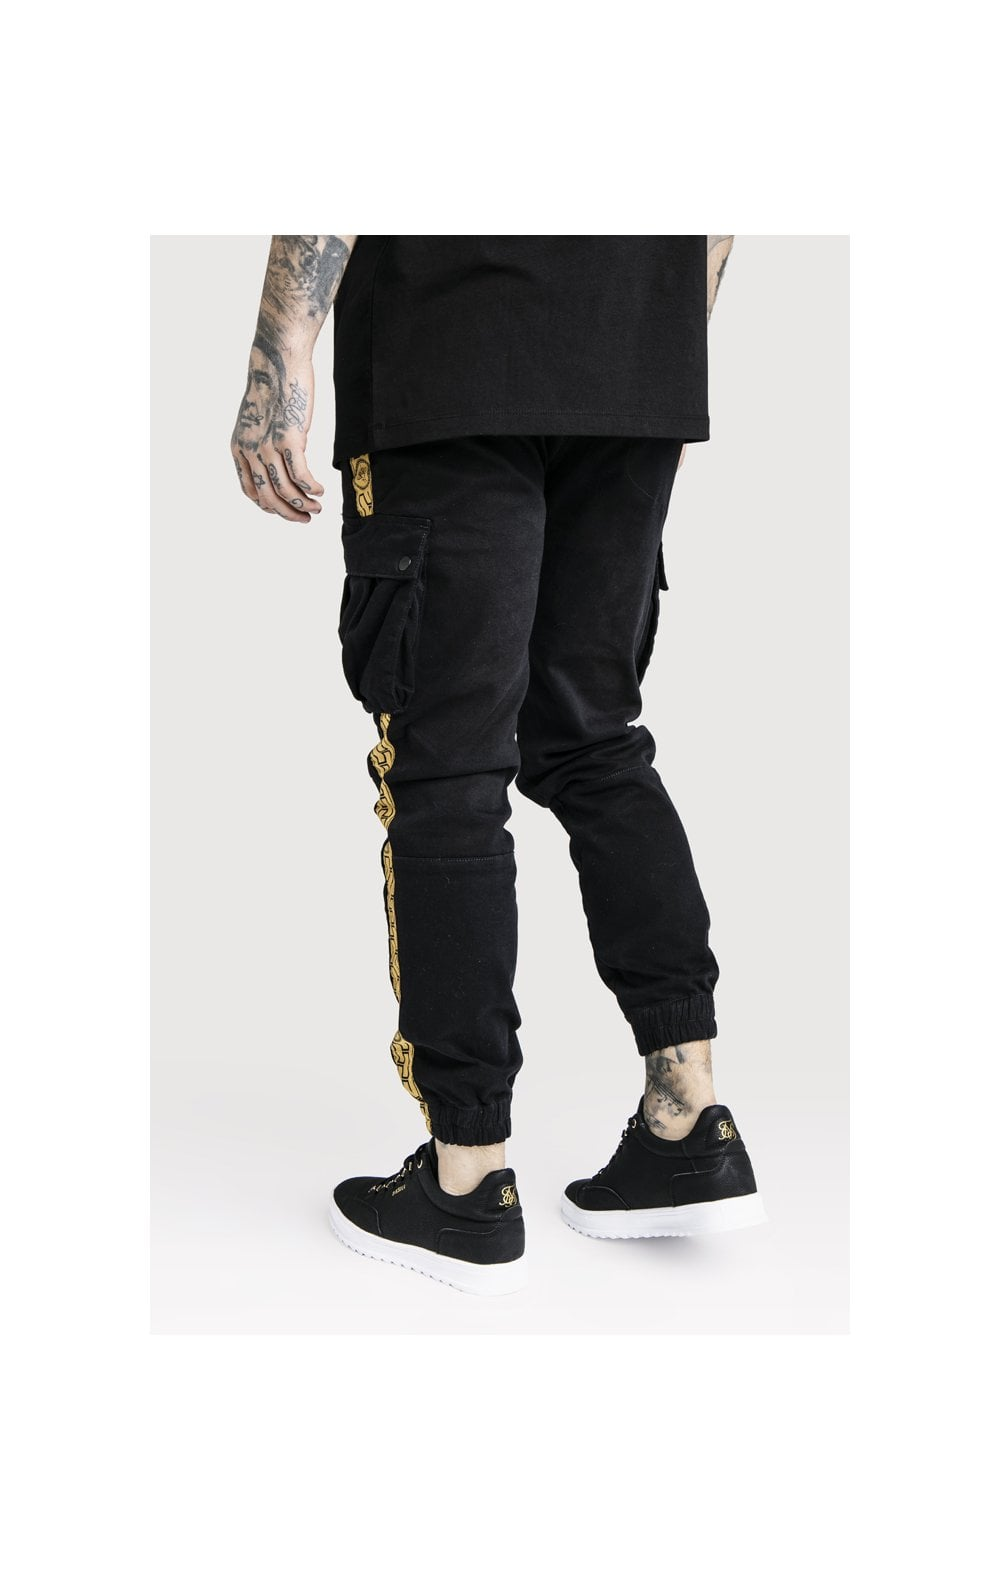 Load image into Gallery viewer, SikSilk x Dani Alves Cargo Pants - Black (5)